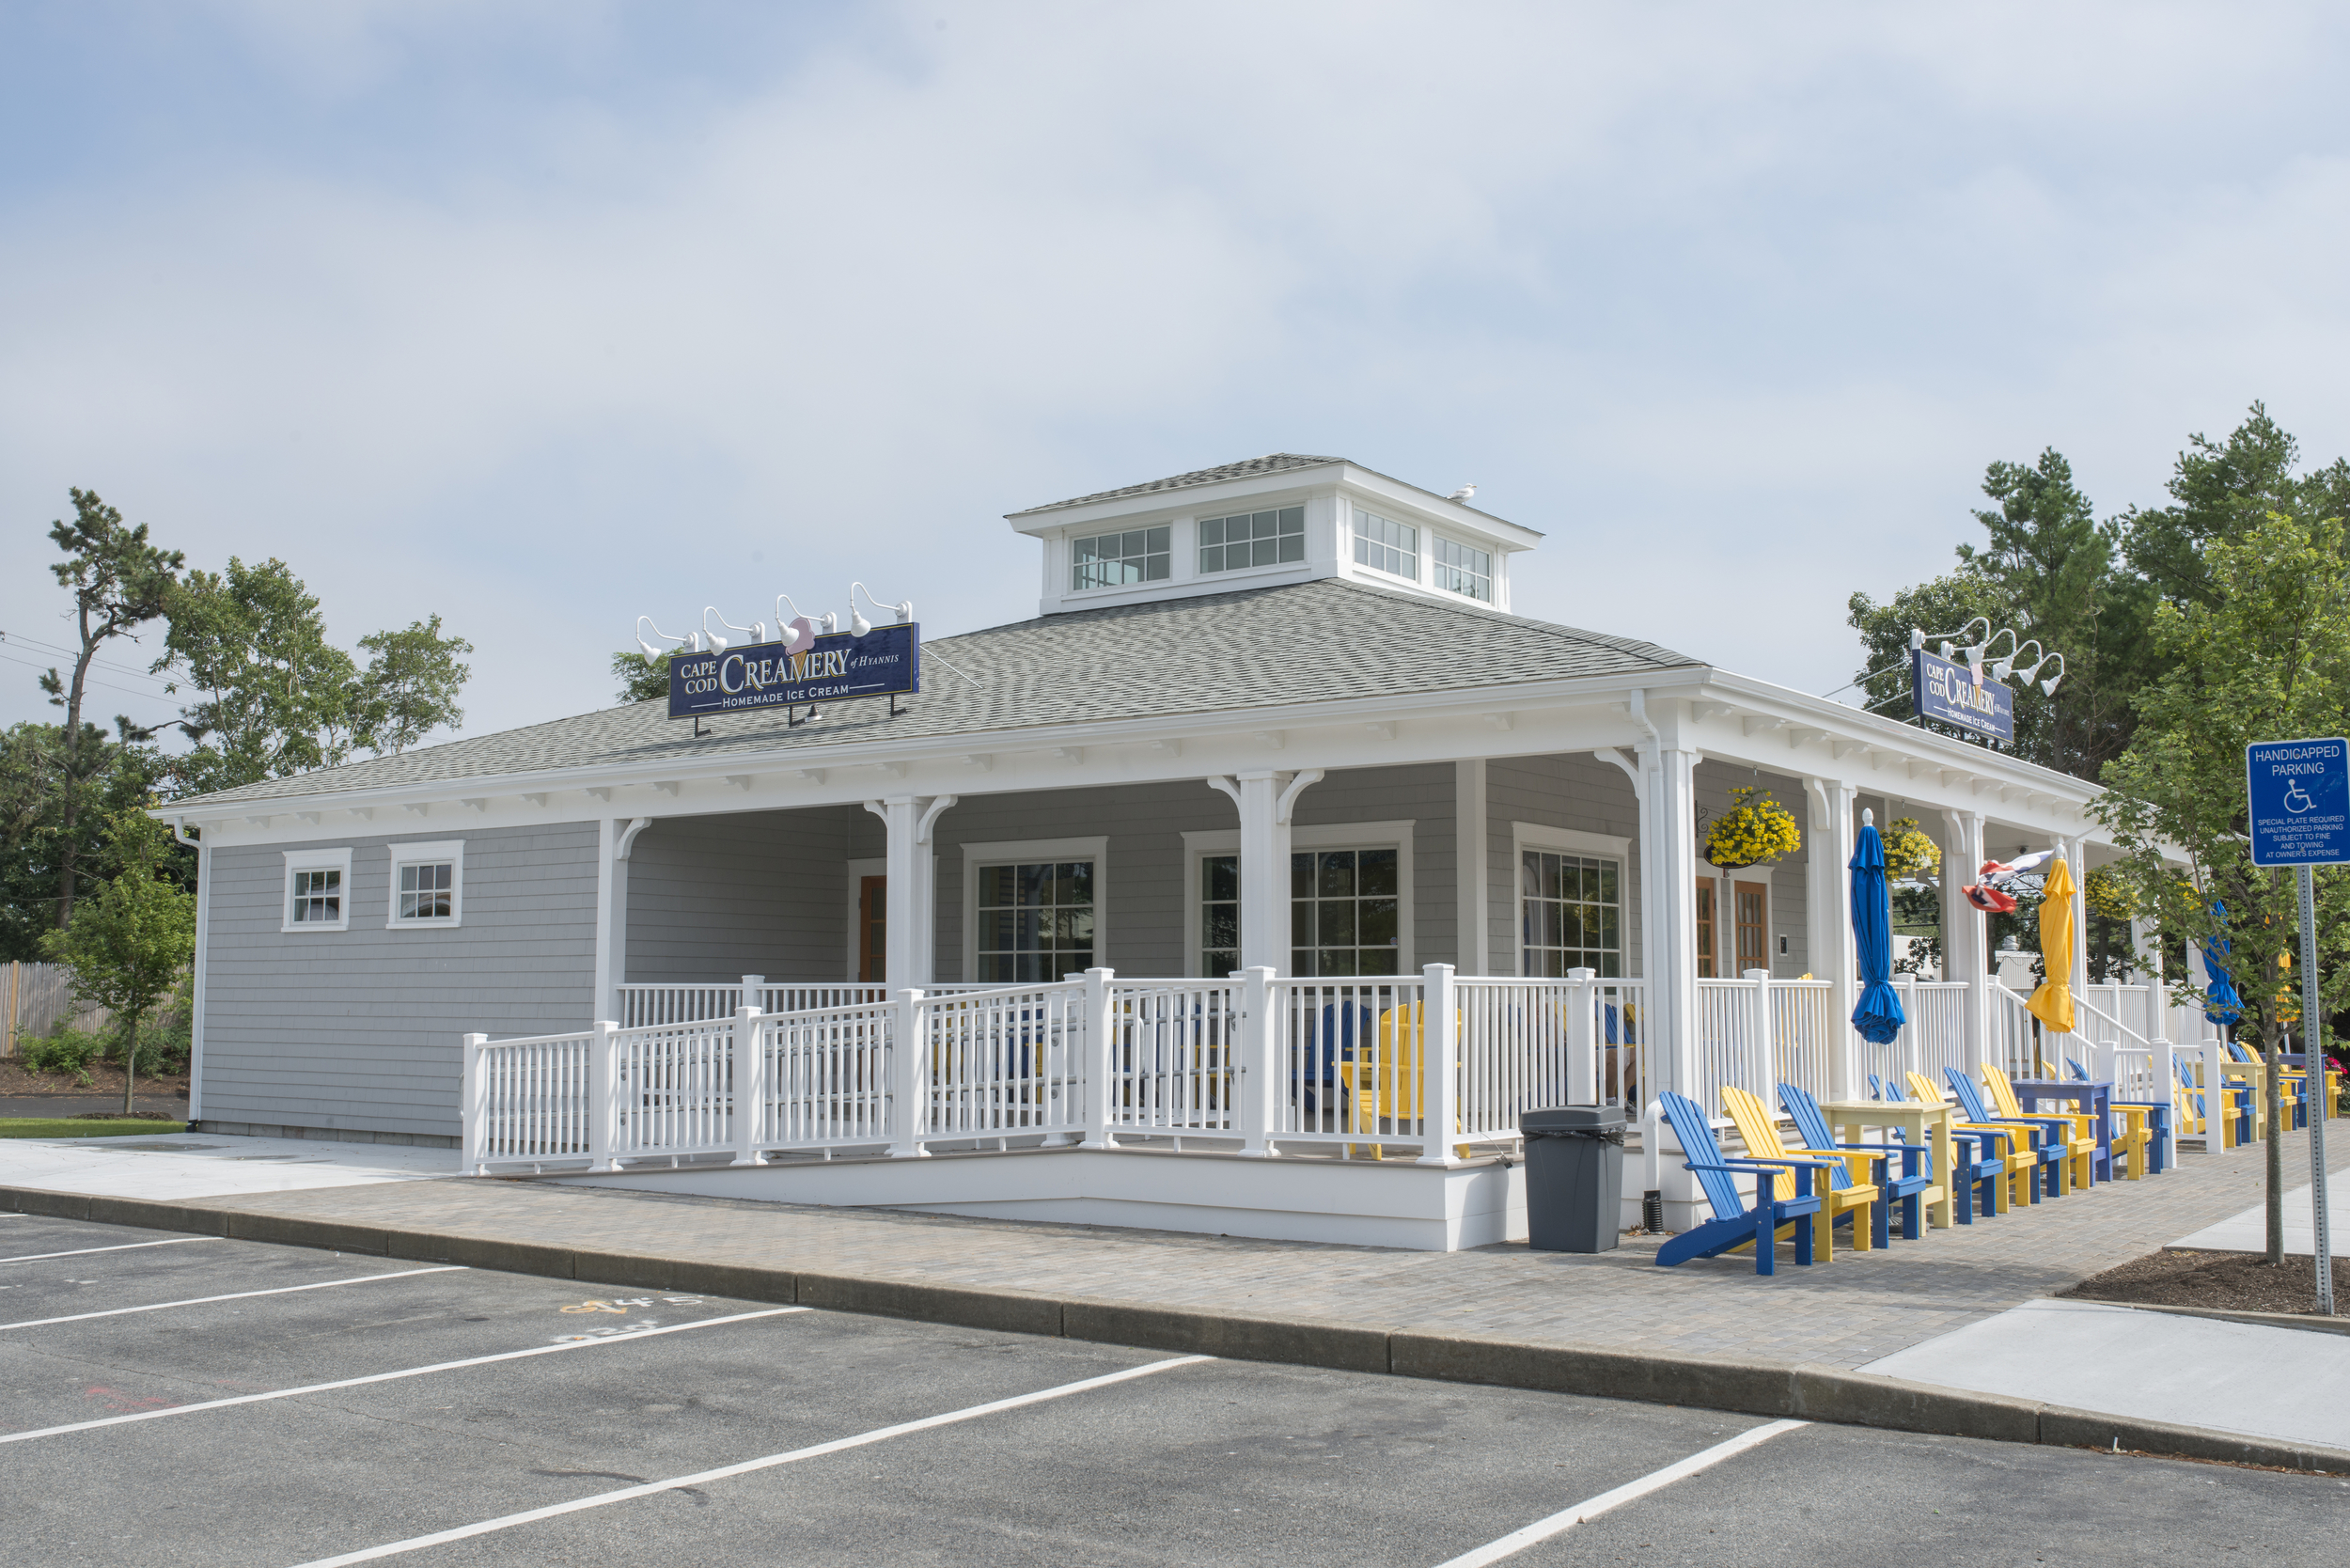 20140728-Cape-Cod-Cream-Hyannis-8.jpg